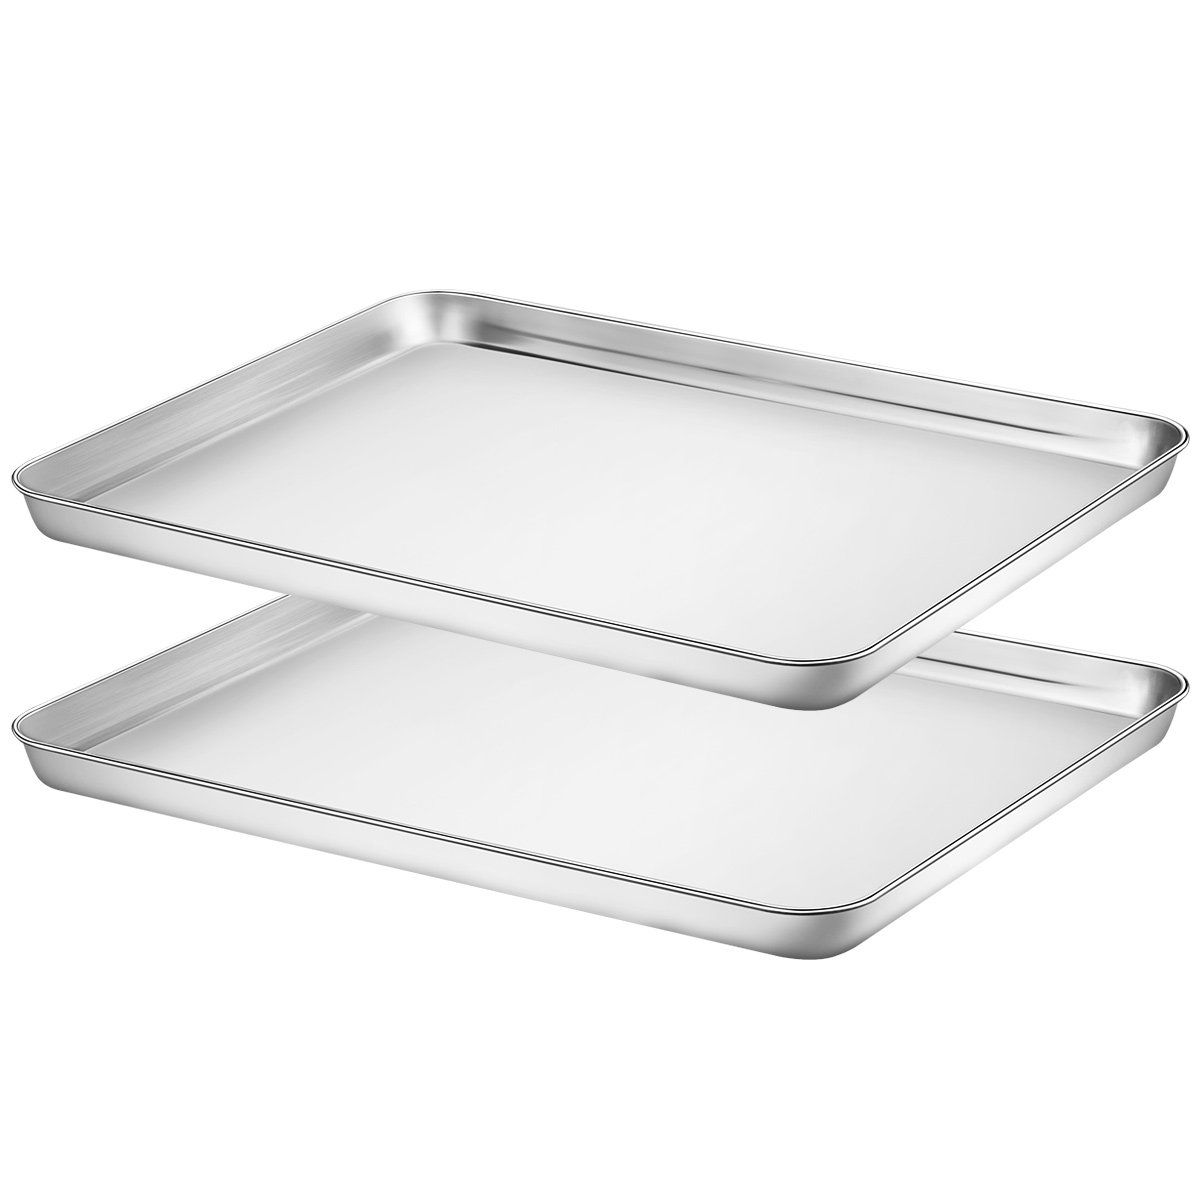 Baking Sheet Set Of 2 Hkj Chef Stainless Steel Cookie Sheet Set 2 Pieces Toaster Oven Tray Pan Non Toxic Healthy Easy Clean Click Imag Pan Cookies Baking Pans Cleaning